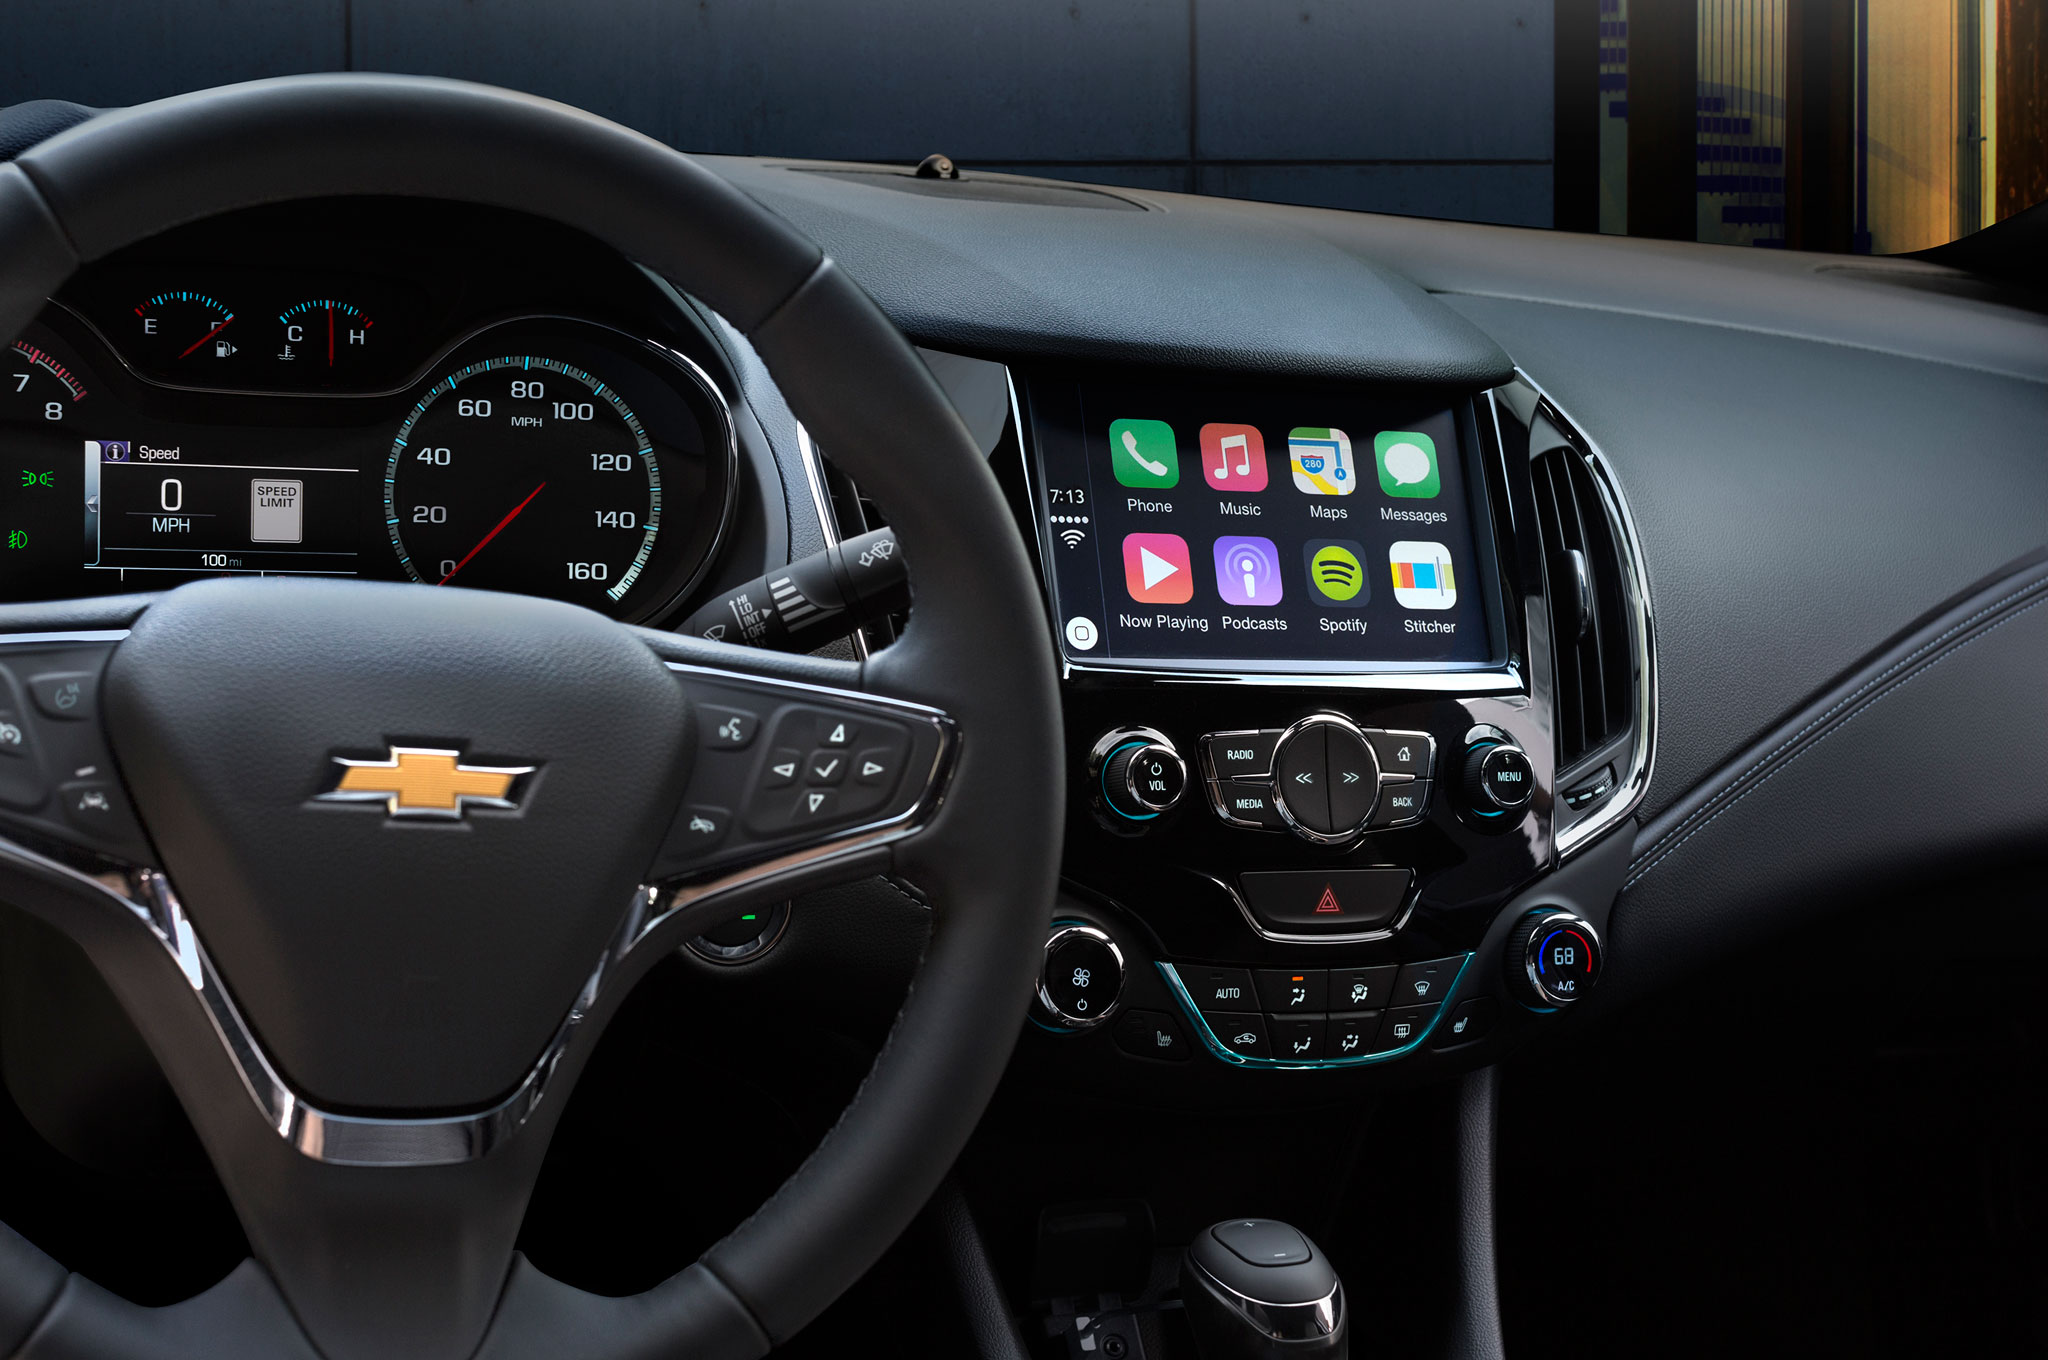 2016 Chevrolet Cruze Interior Center Stack